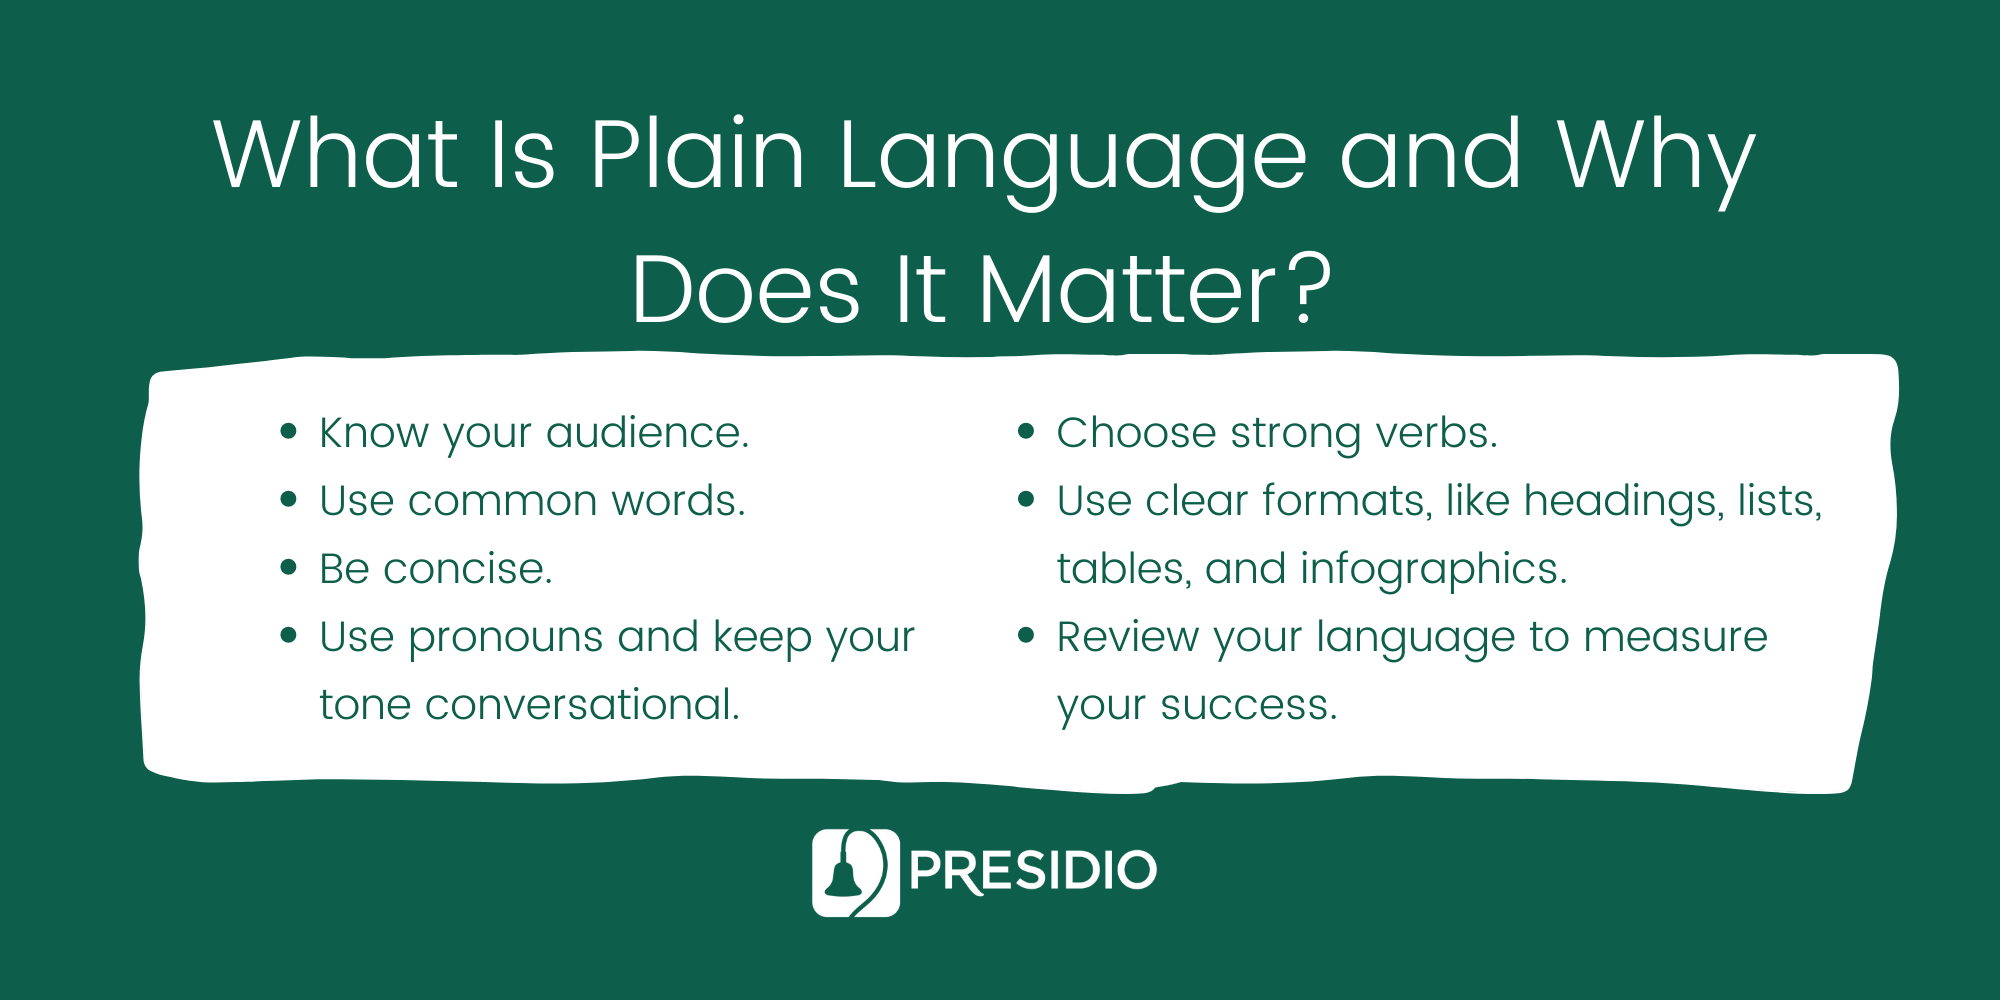 What Is Plain Language and Why Does It Matter?